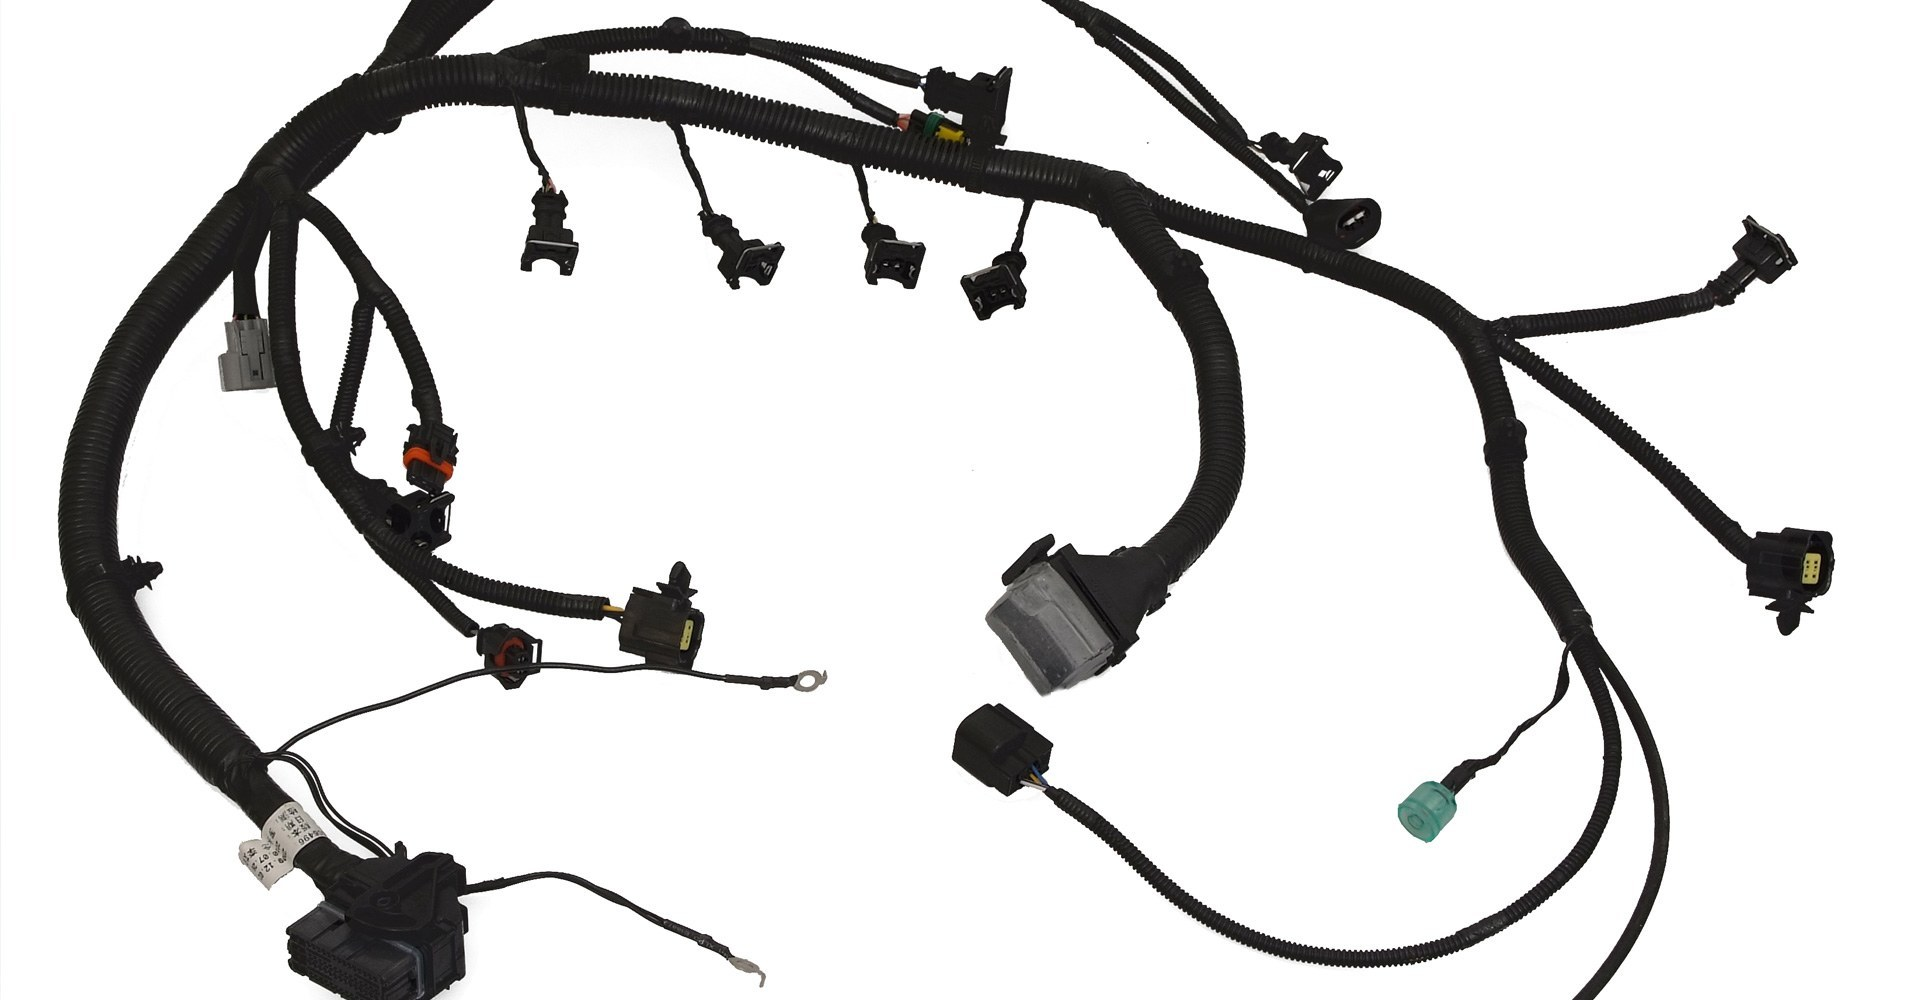 wireharness automotive wire harness products lorom car wiring harness at et-consult.org